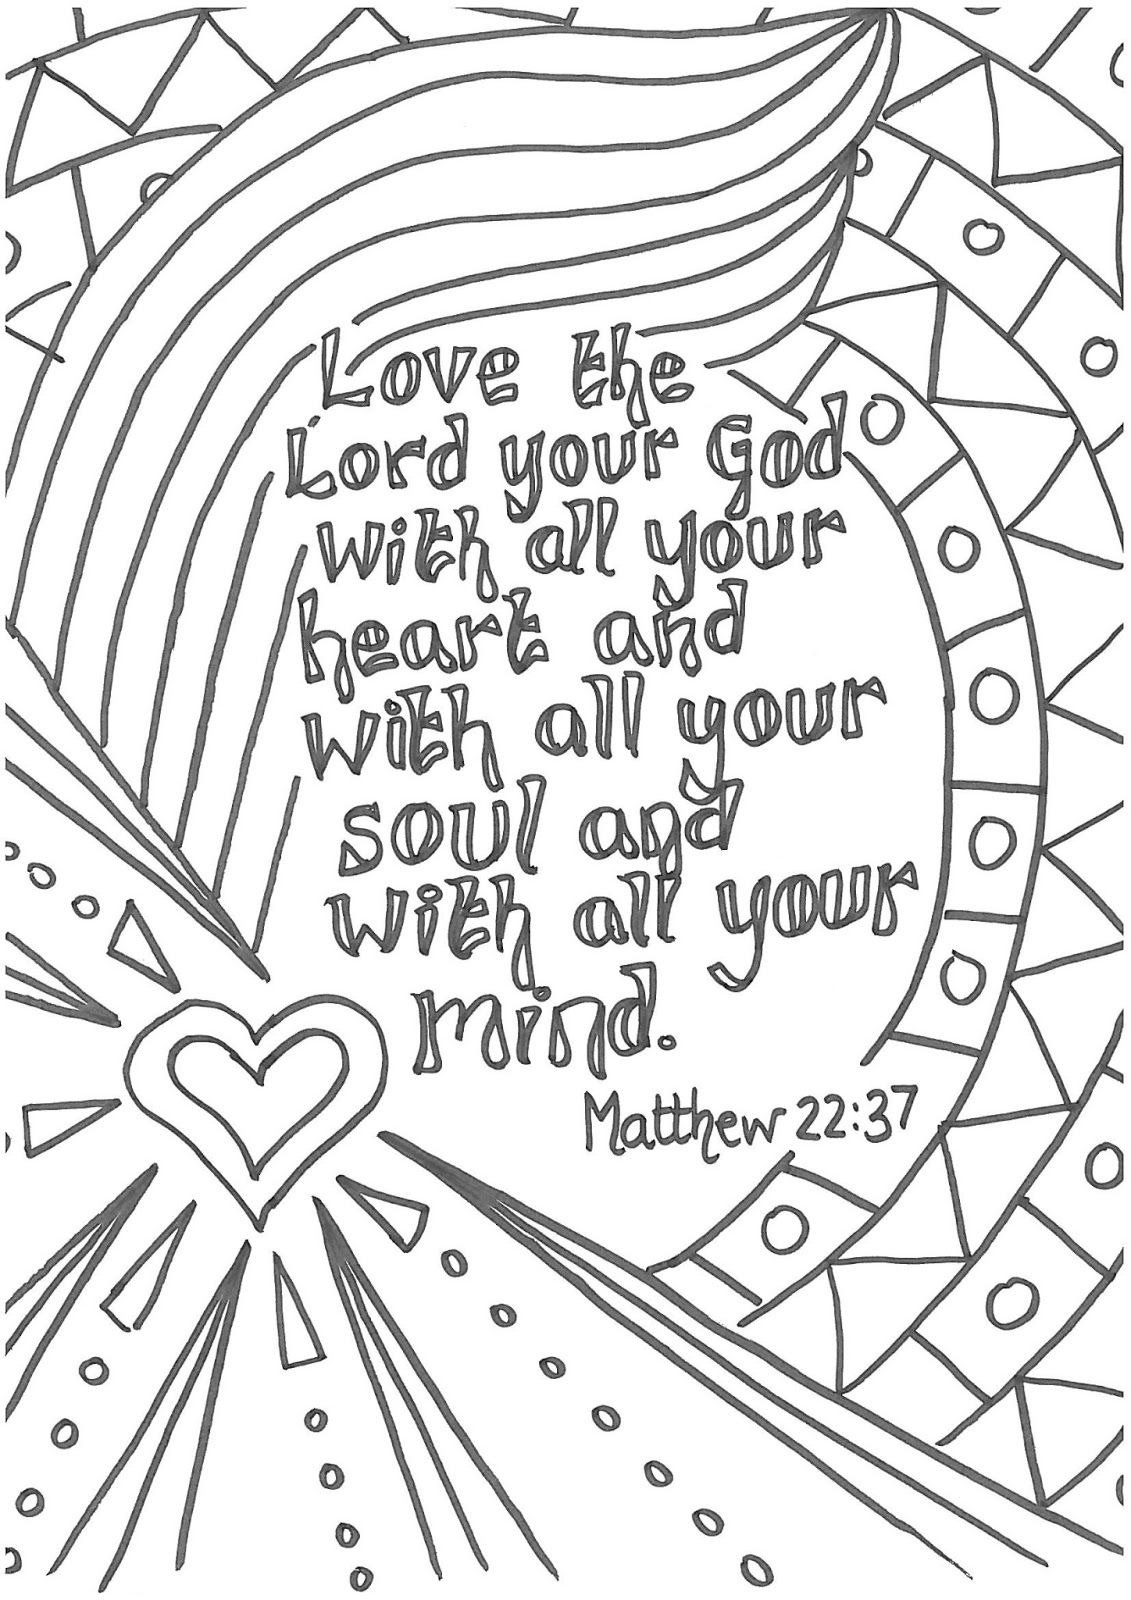 Matt 22:37 Love the Lord your God with all your heart